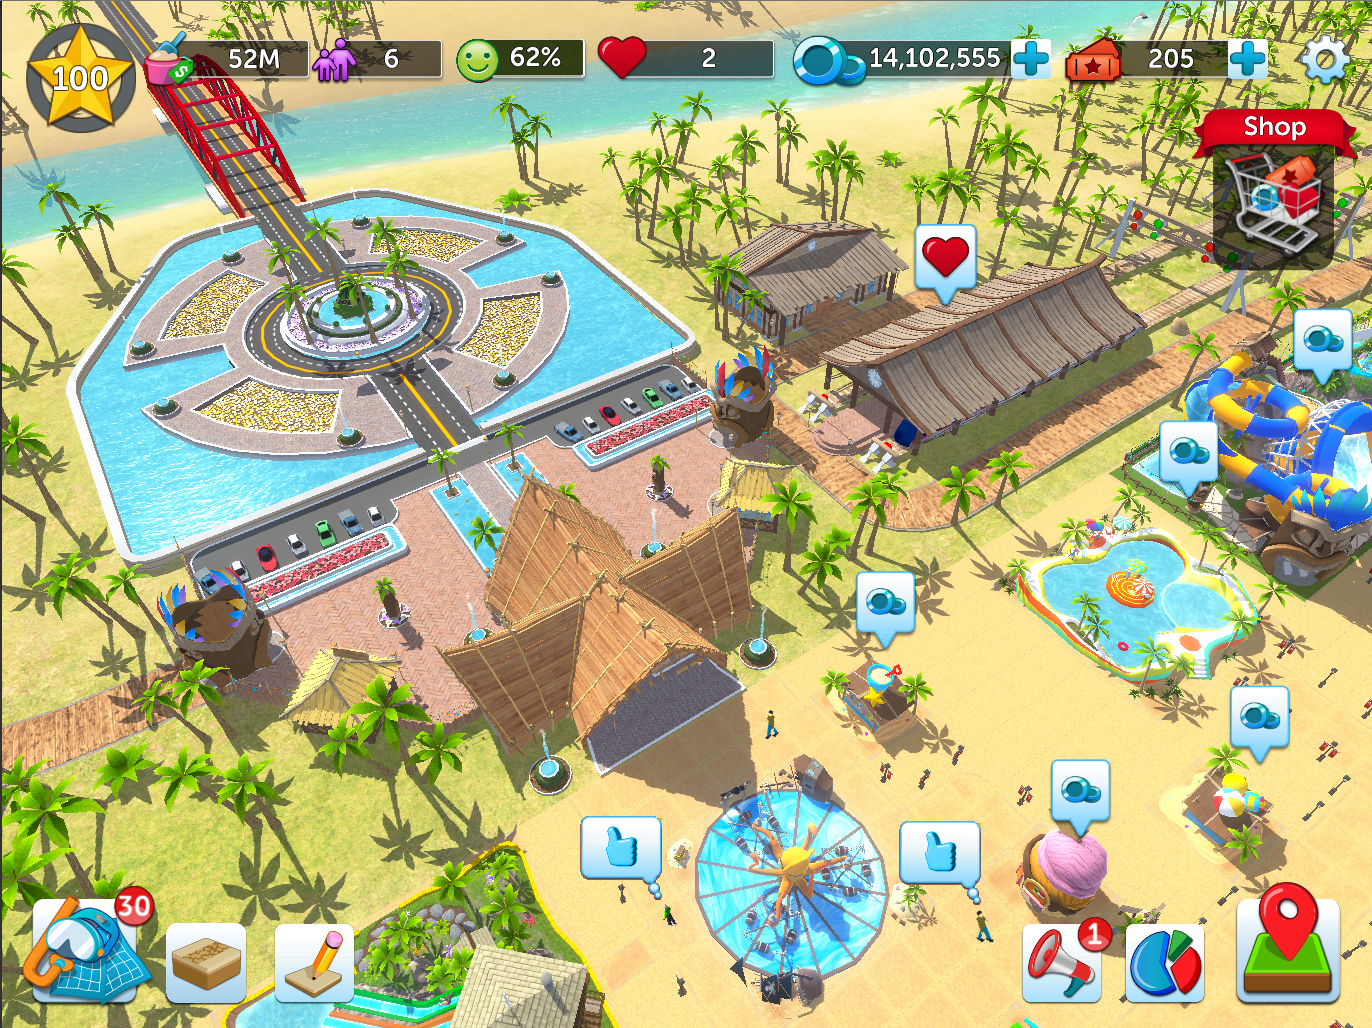 The Edge: Create a Dream Water Park in the Biggest Update Yet for Roller Coaster Tycoon Touch